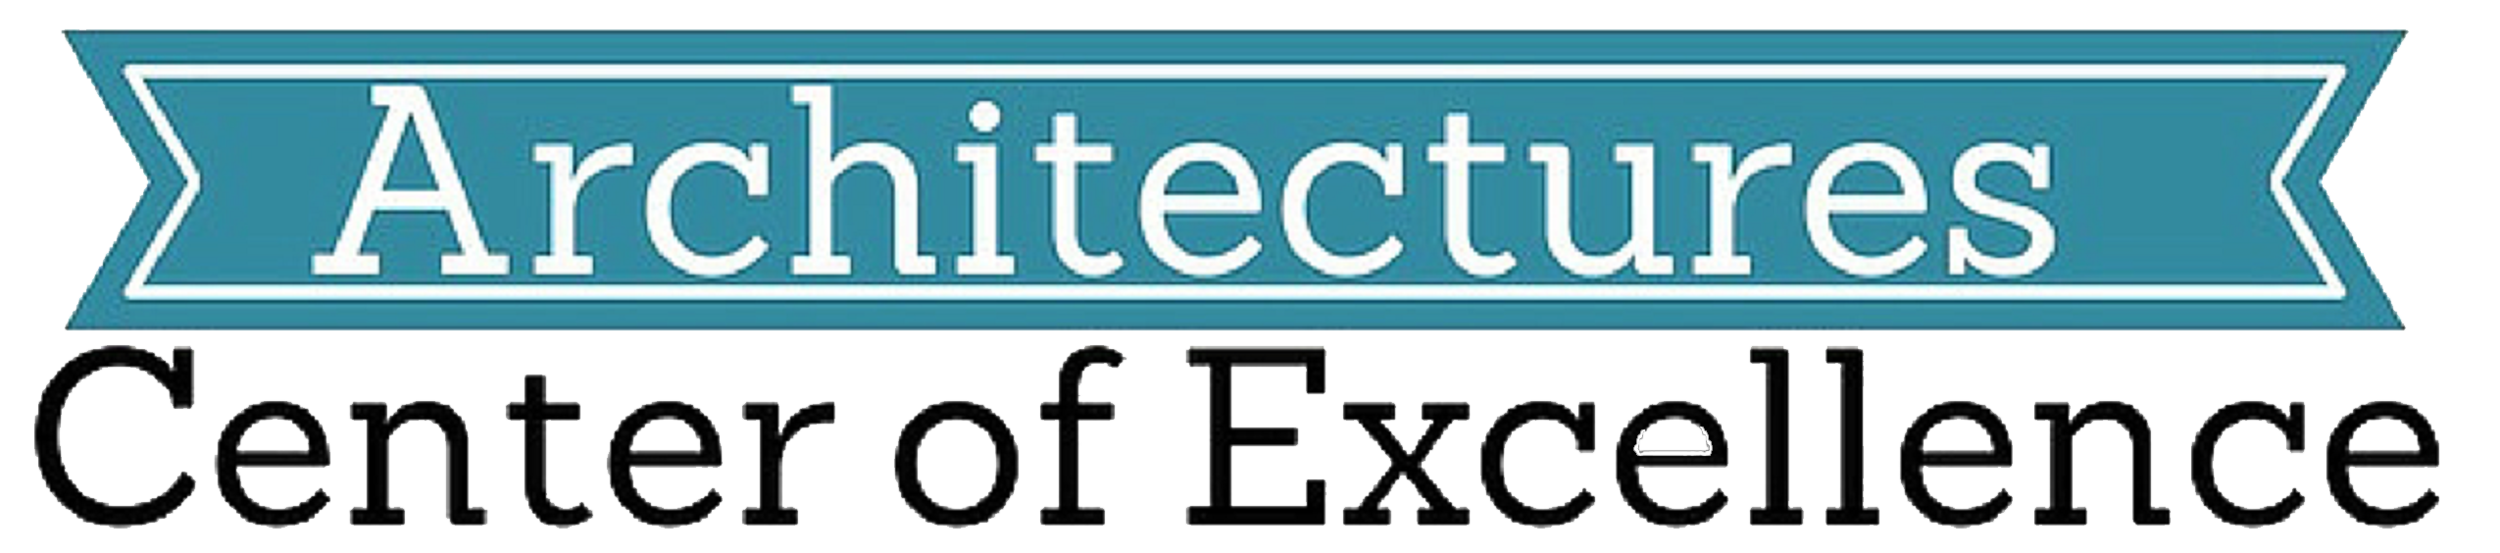 Architectures COE Header Logo.png